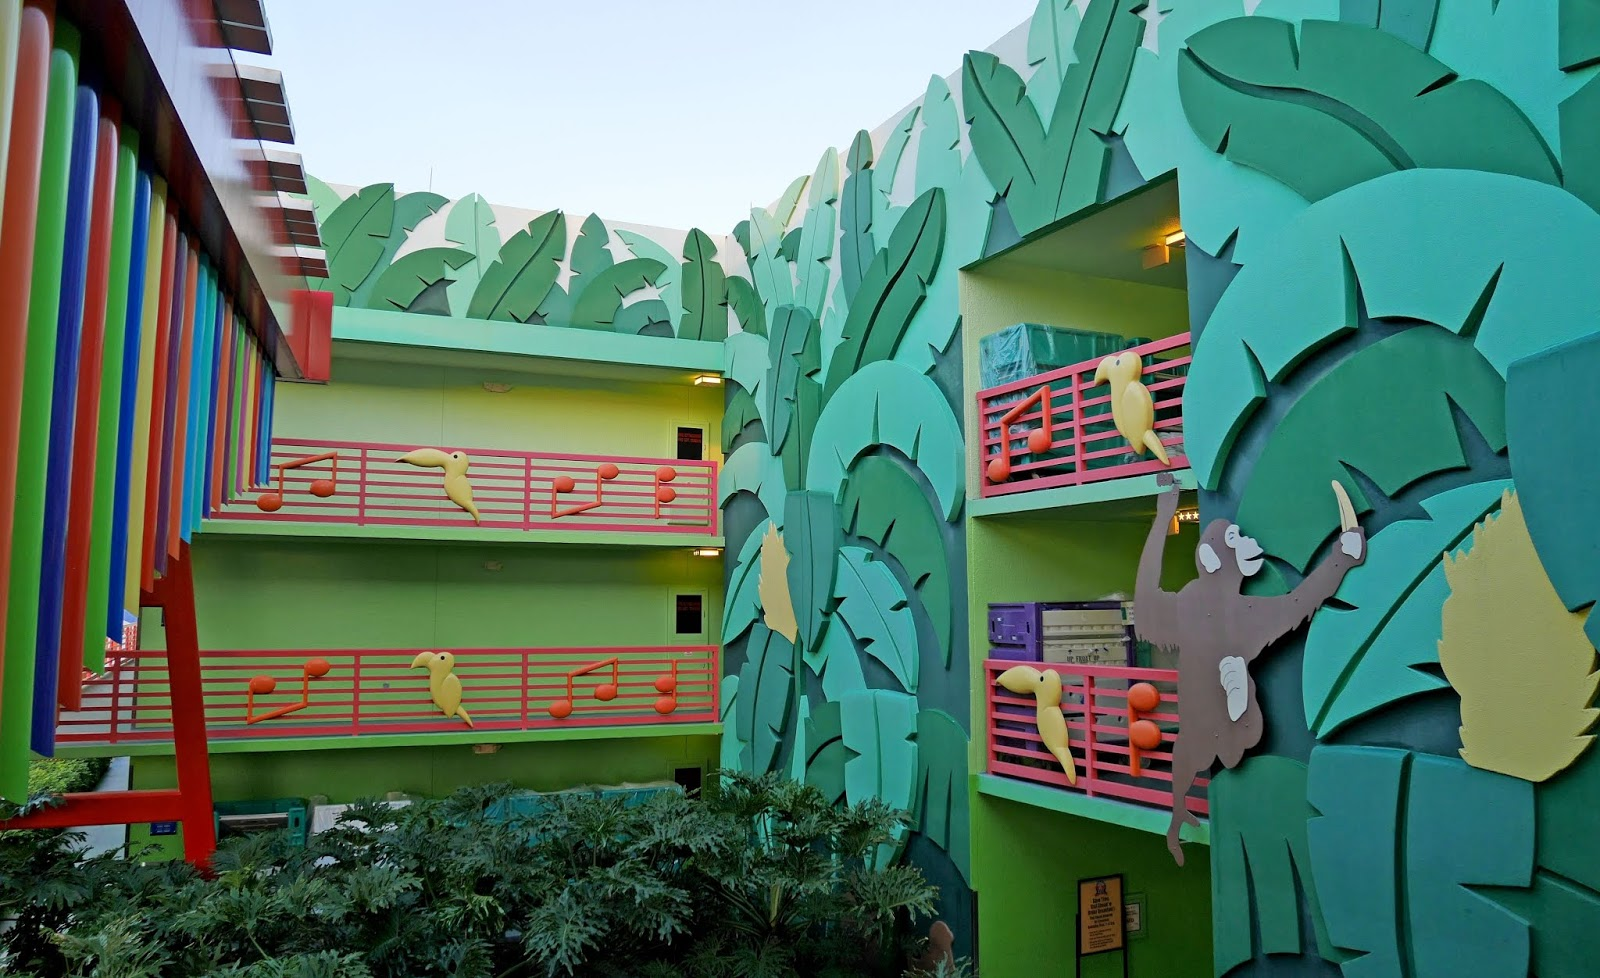 Calypso building at Disney's All-Star Music resort